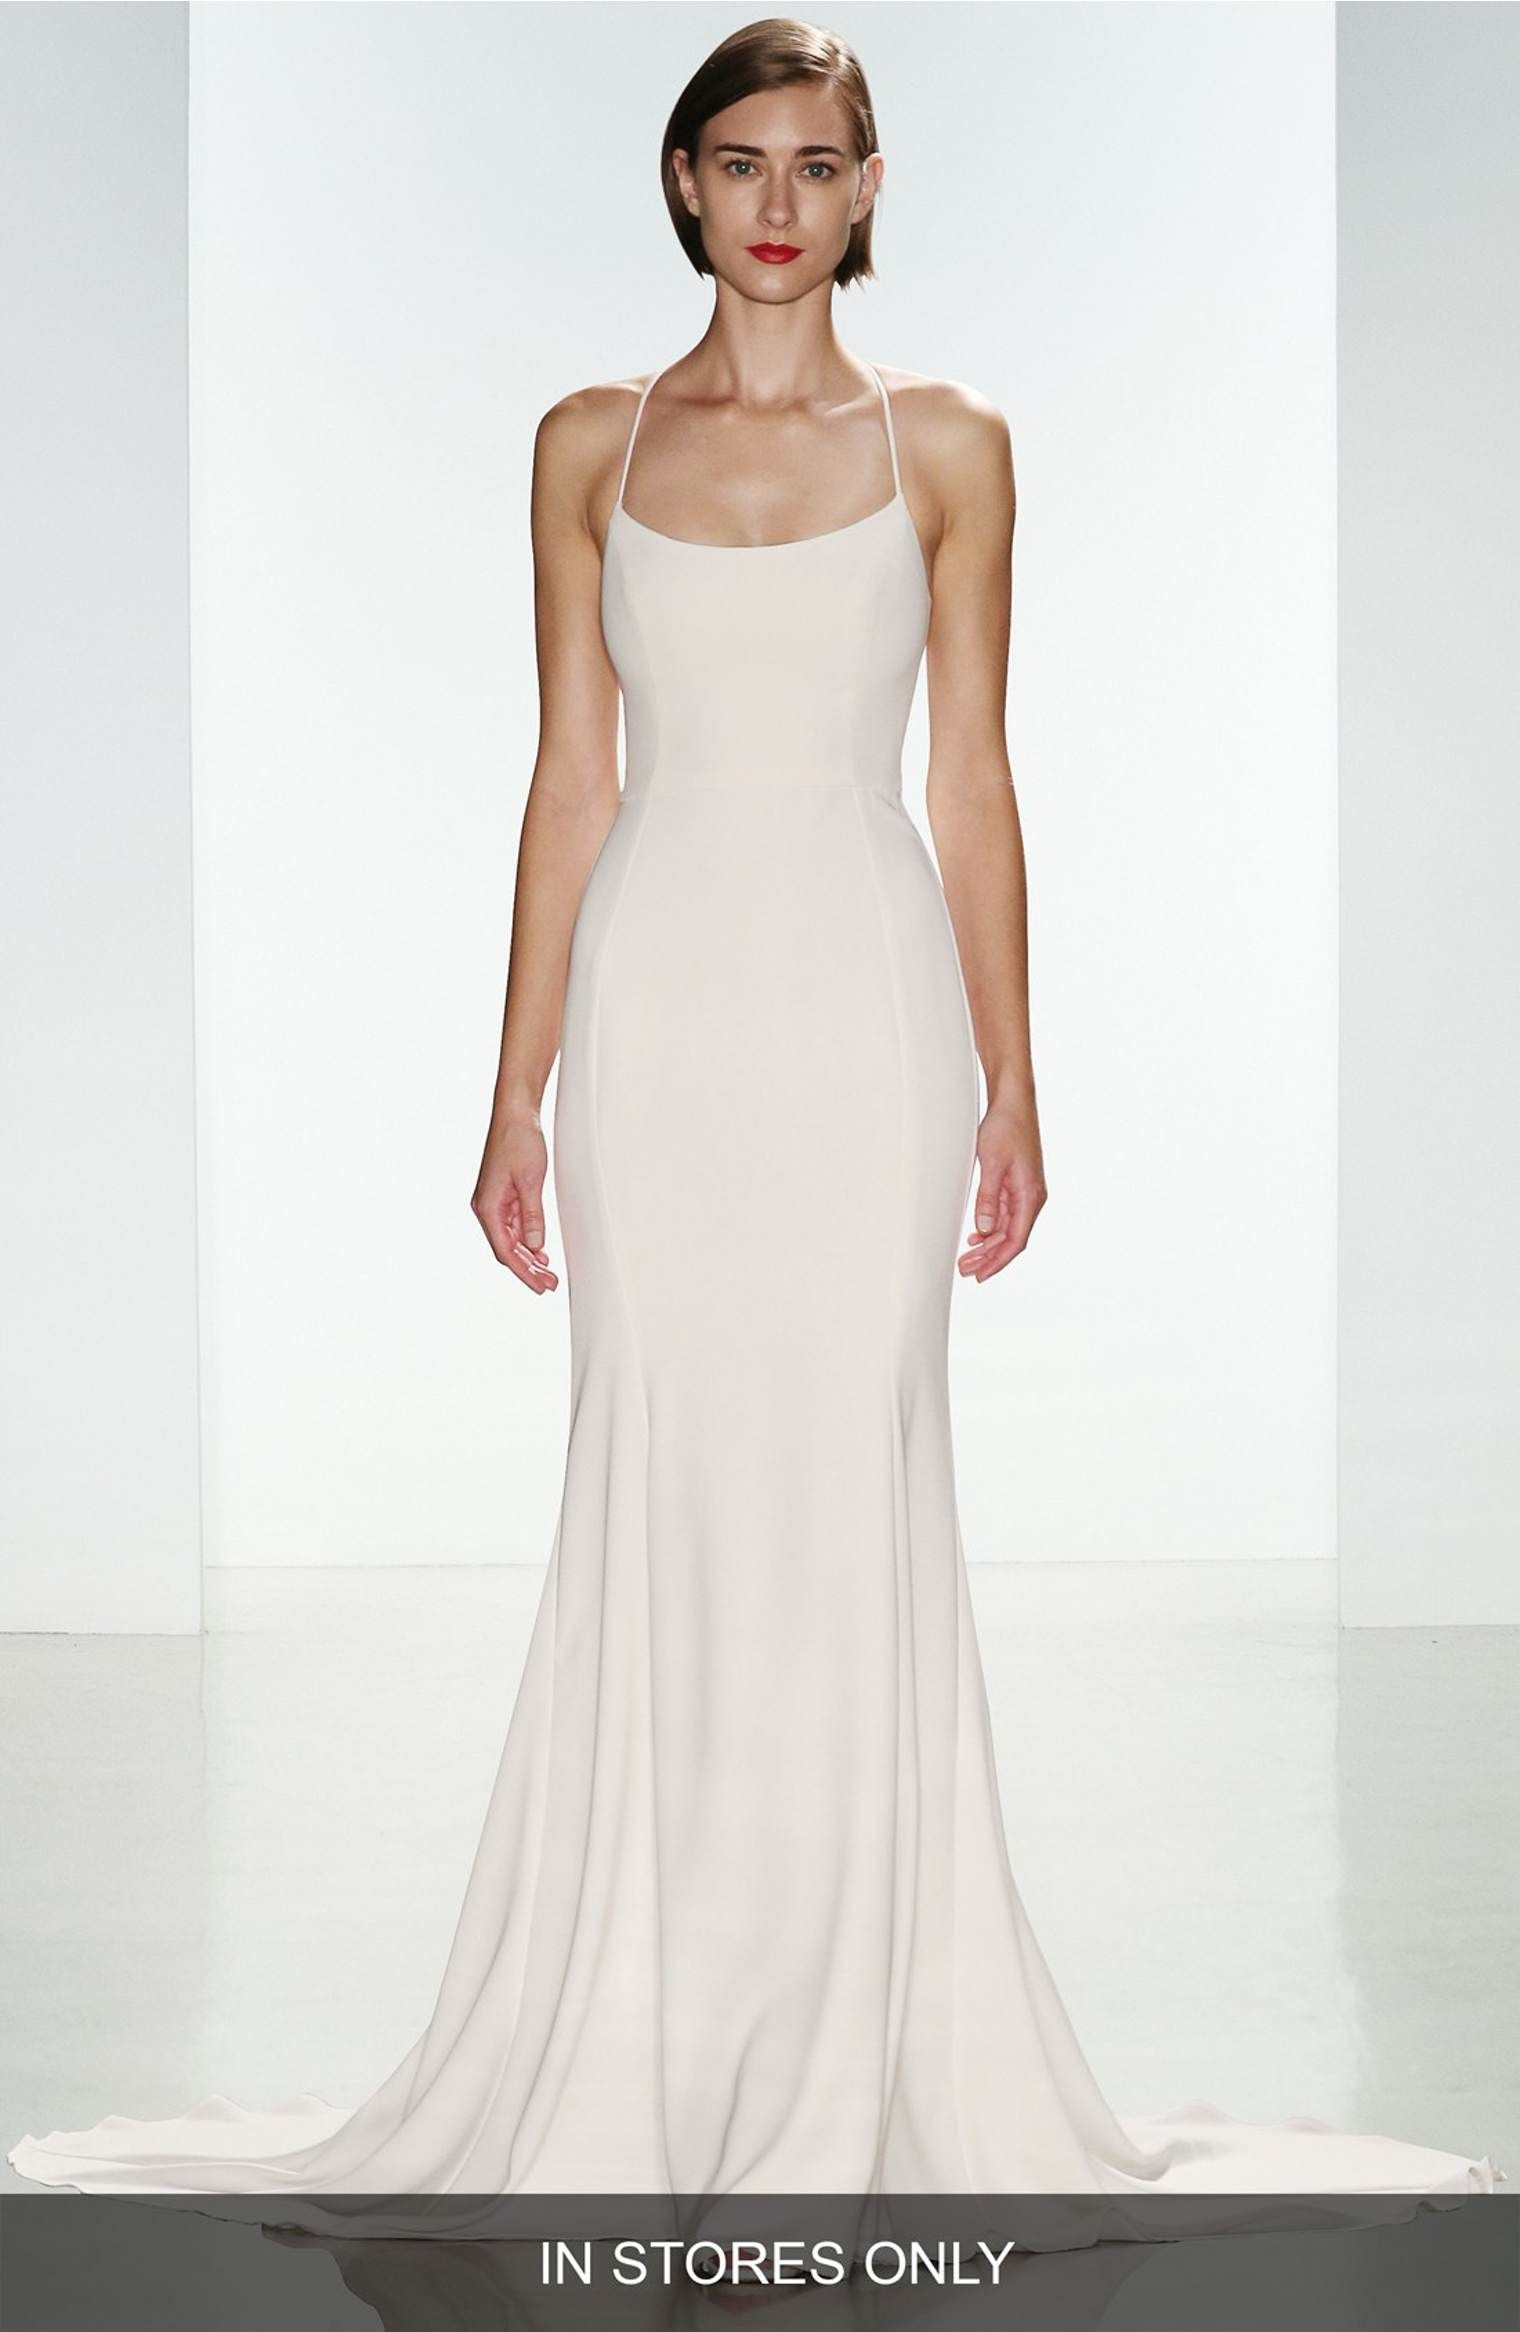 Nordstrom wedding dress  Audreyu Crepe Racerback Gown  Crepes Gowns and Nordstrom